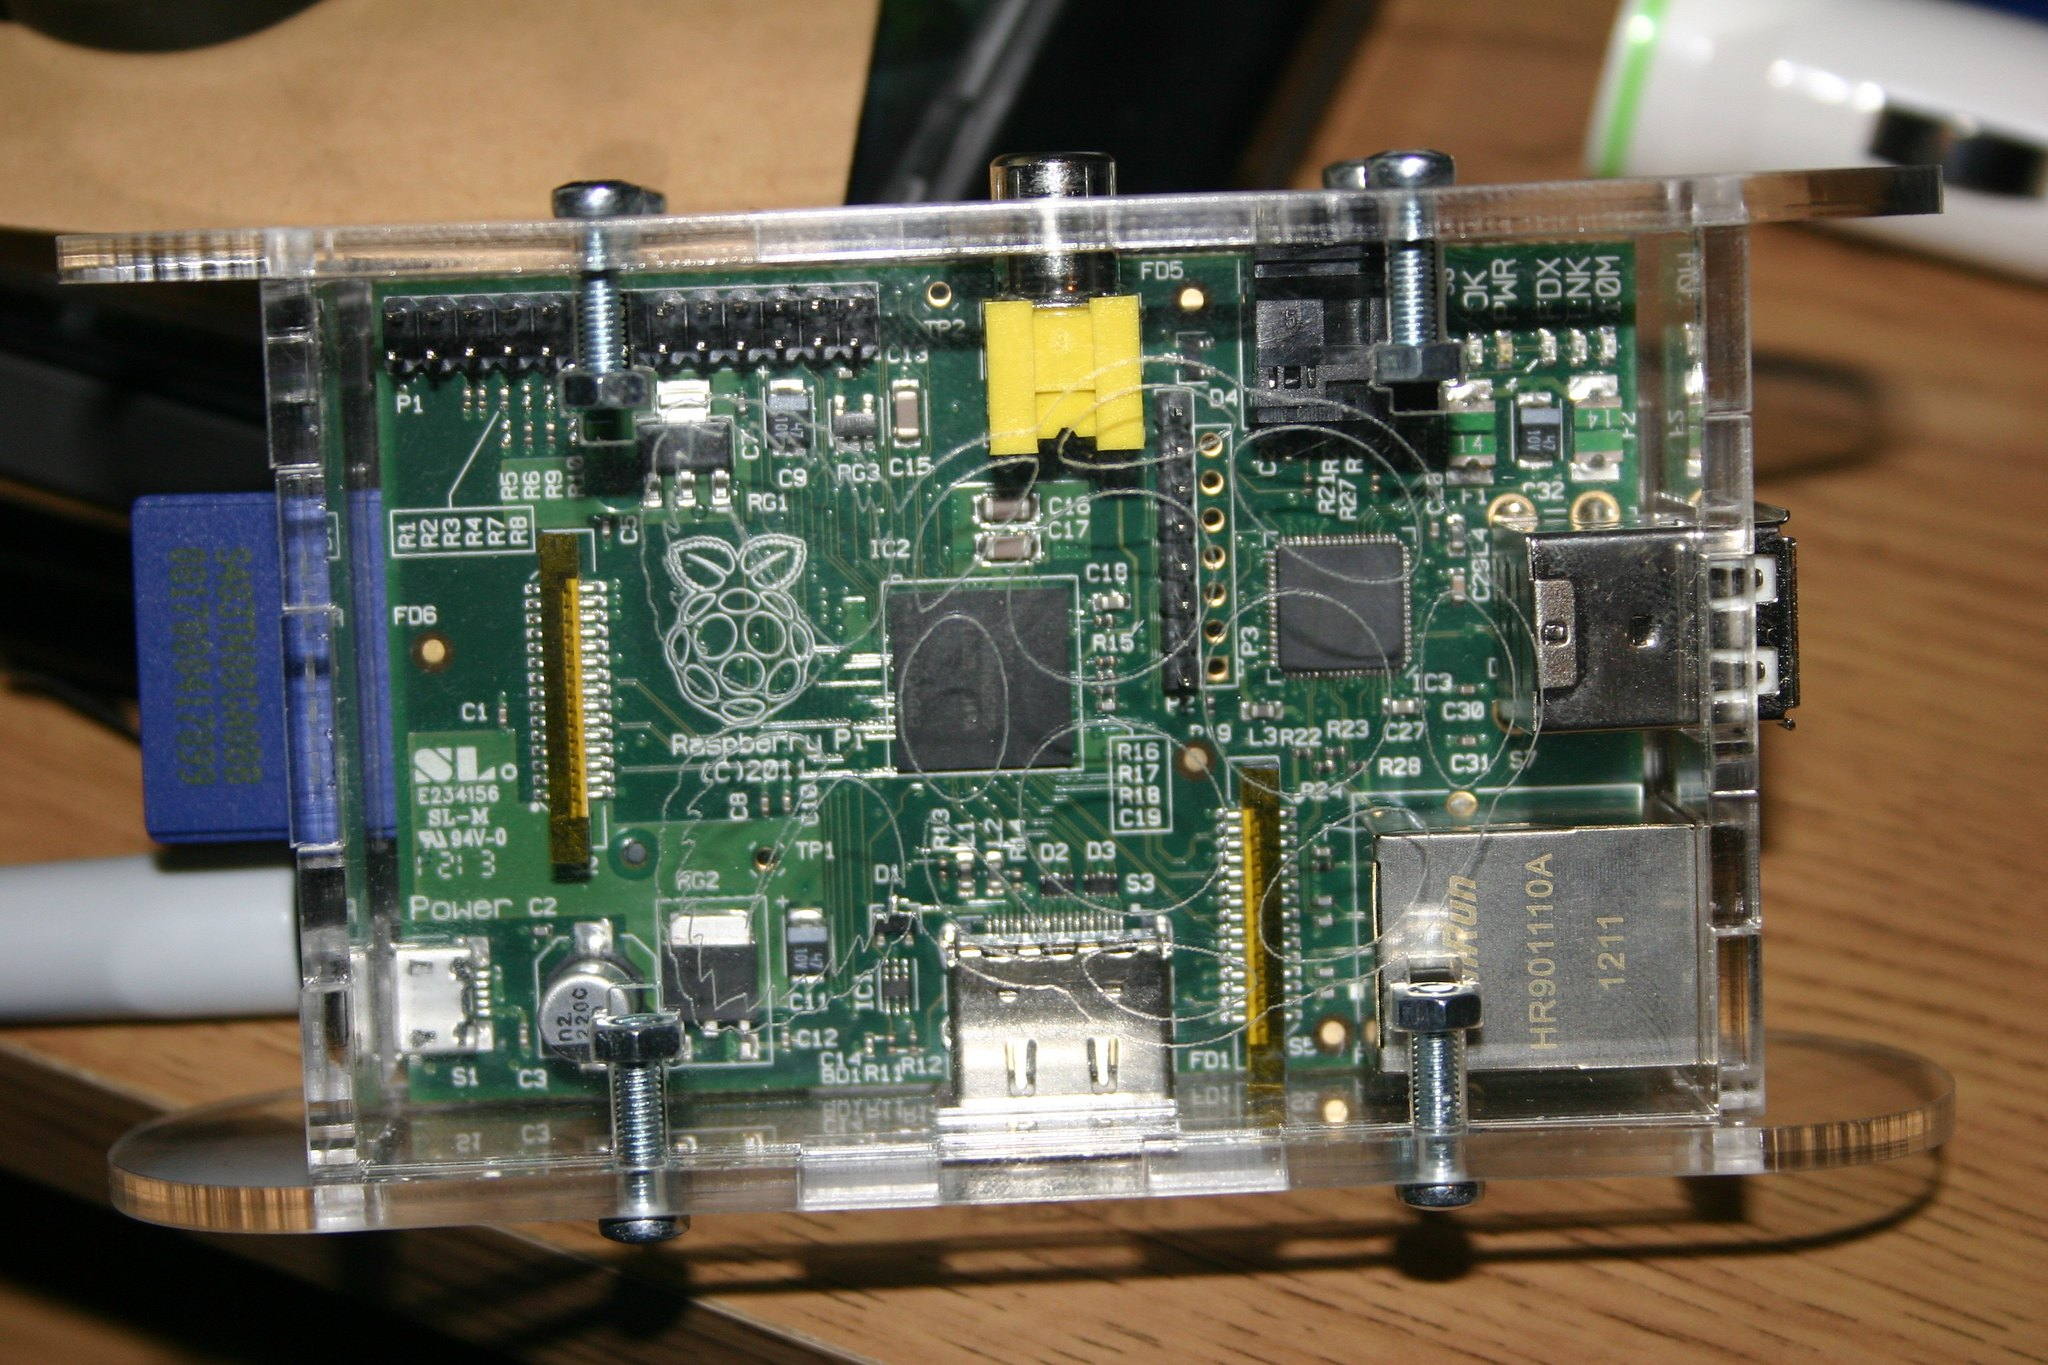 Picture of a Raspberry Pi Computer